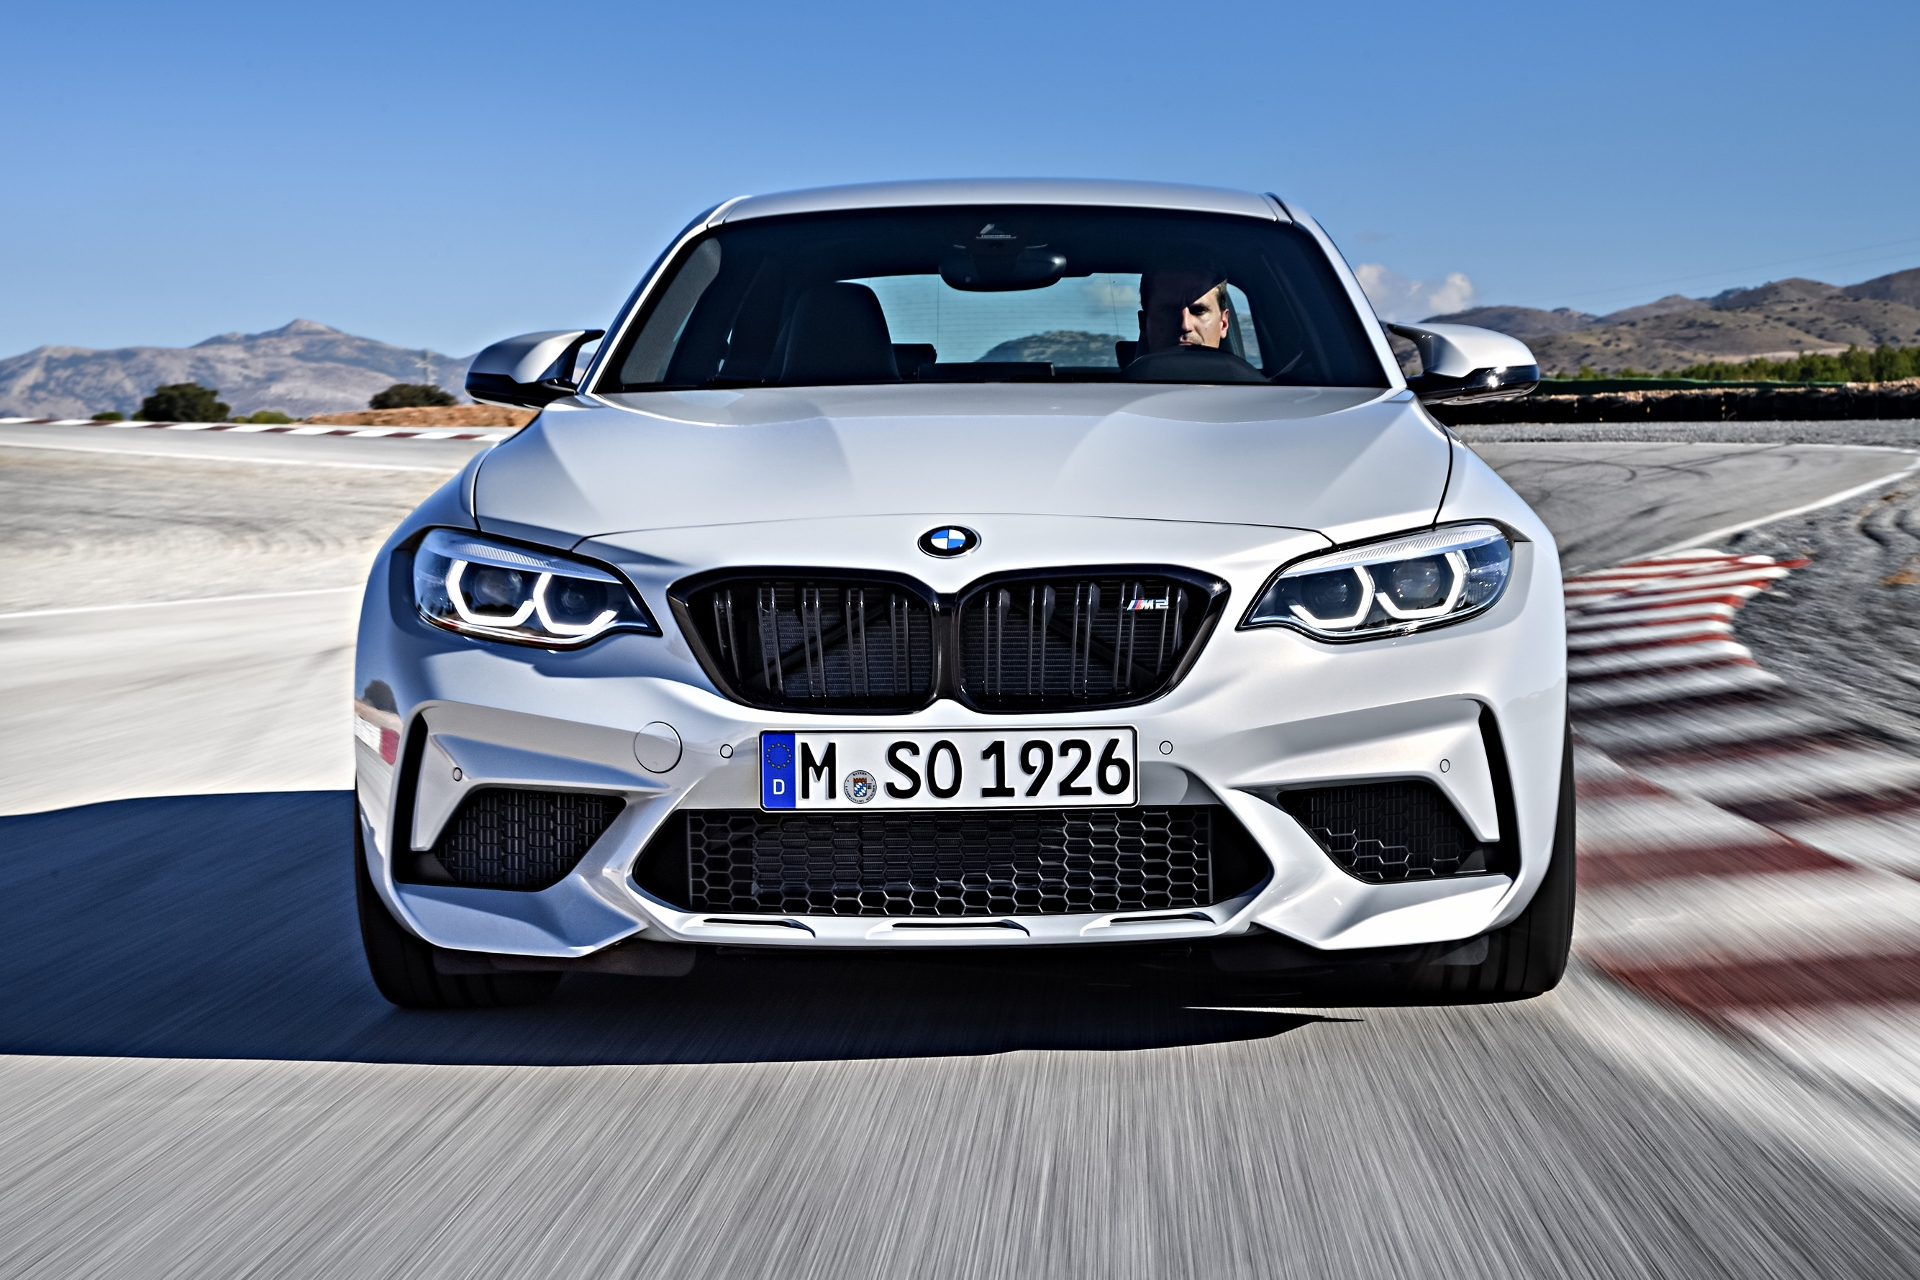 BMW M4 0 60 >> 2019 BMW M2 Competition coming to delight purists, slay tracks